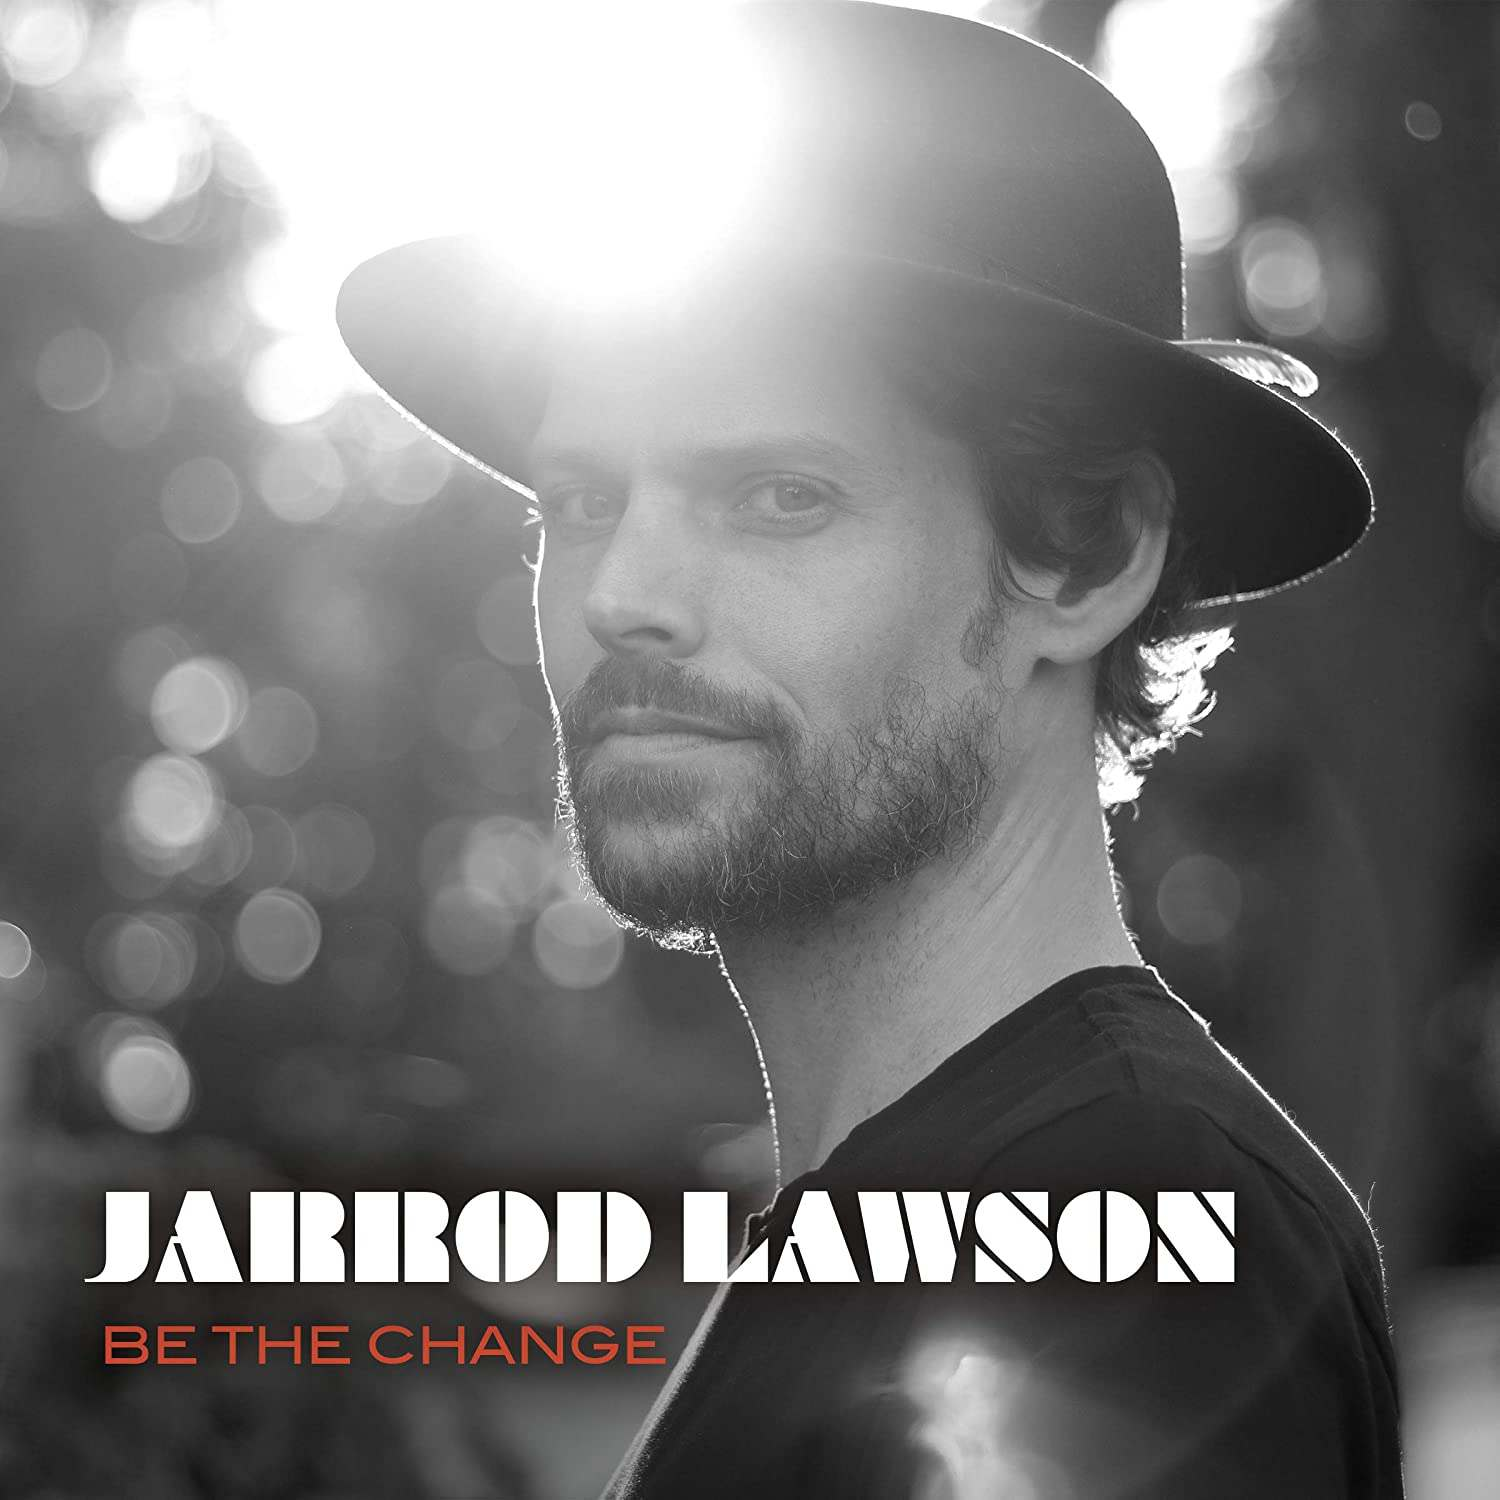 Be The Change by Jarrod Lawson